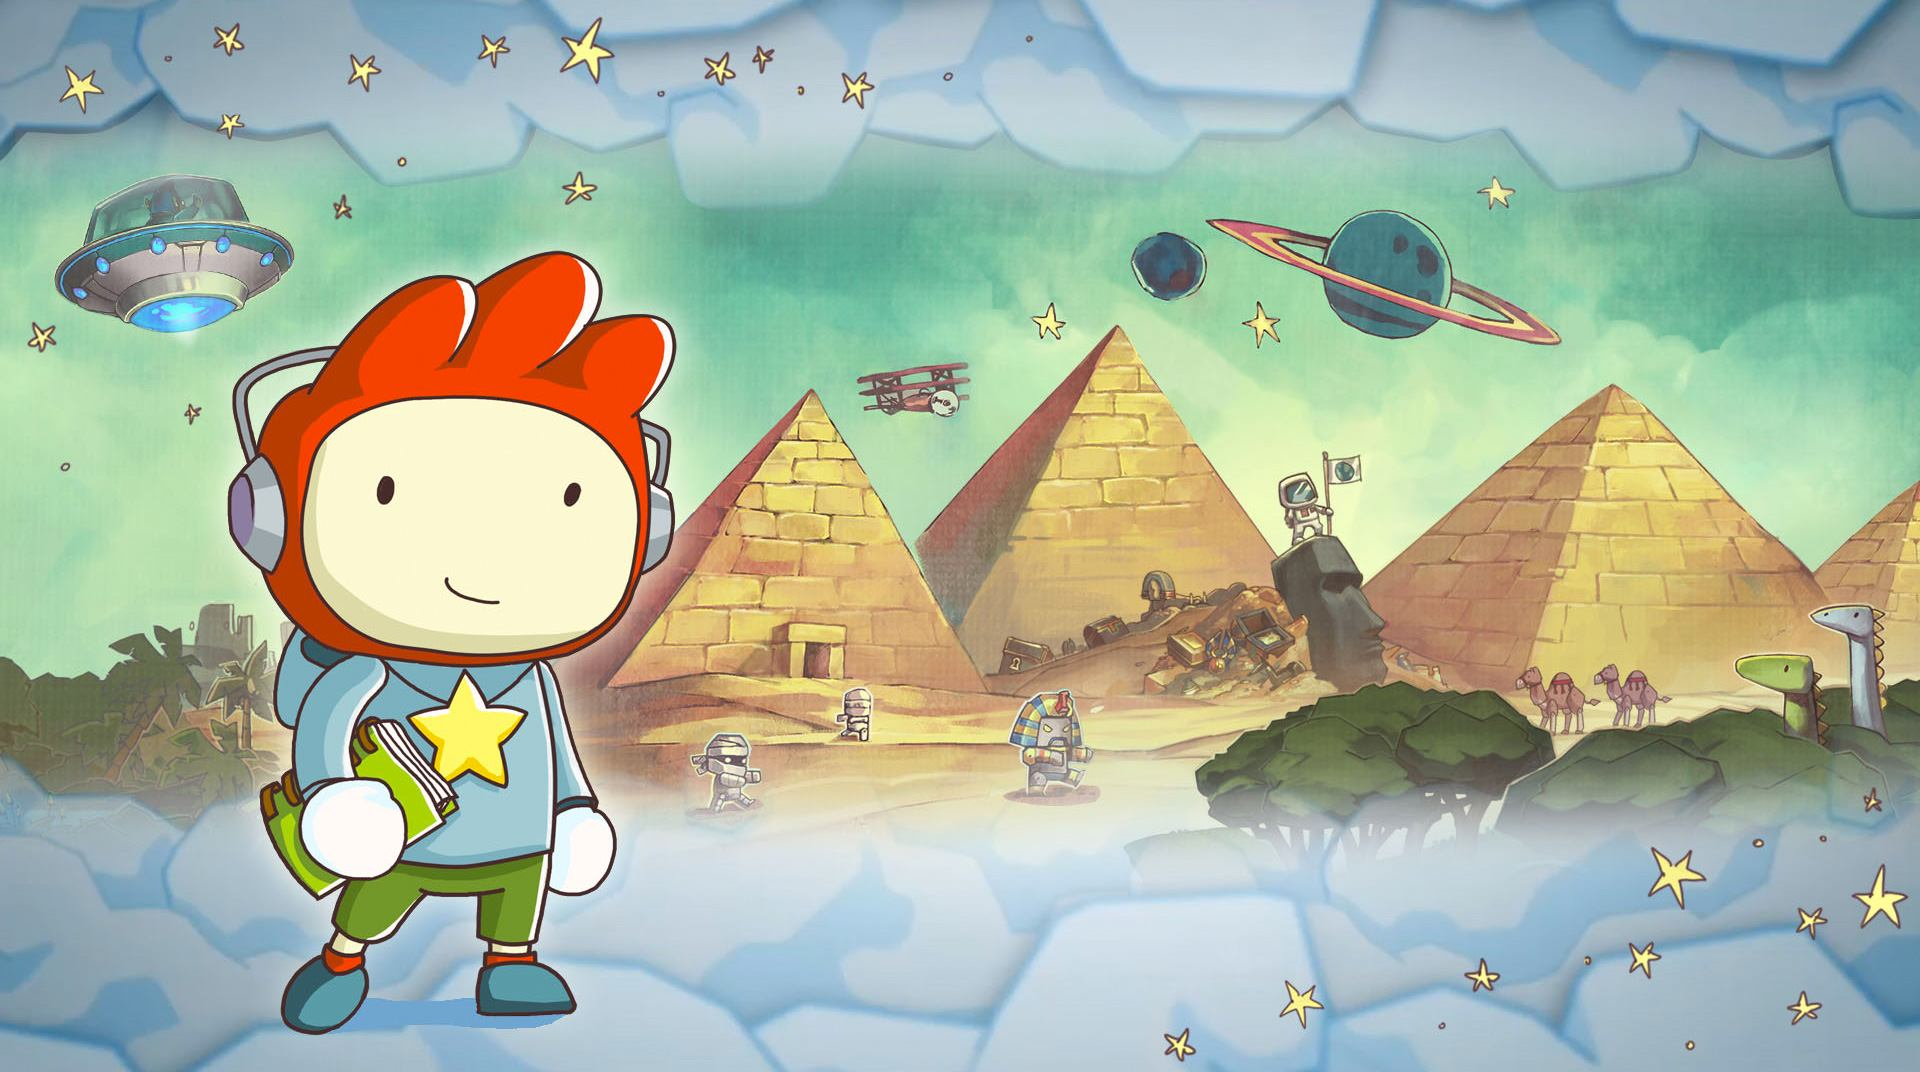 Download Scribblenauts Unlimited on PC with BlueStacks